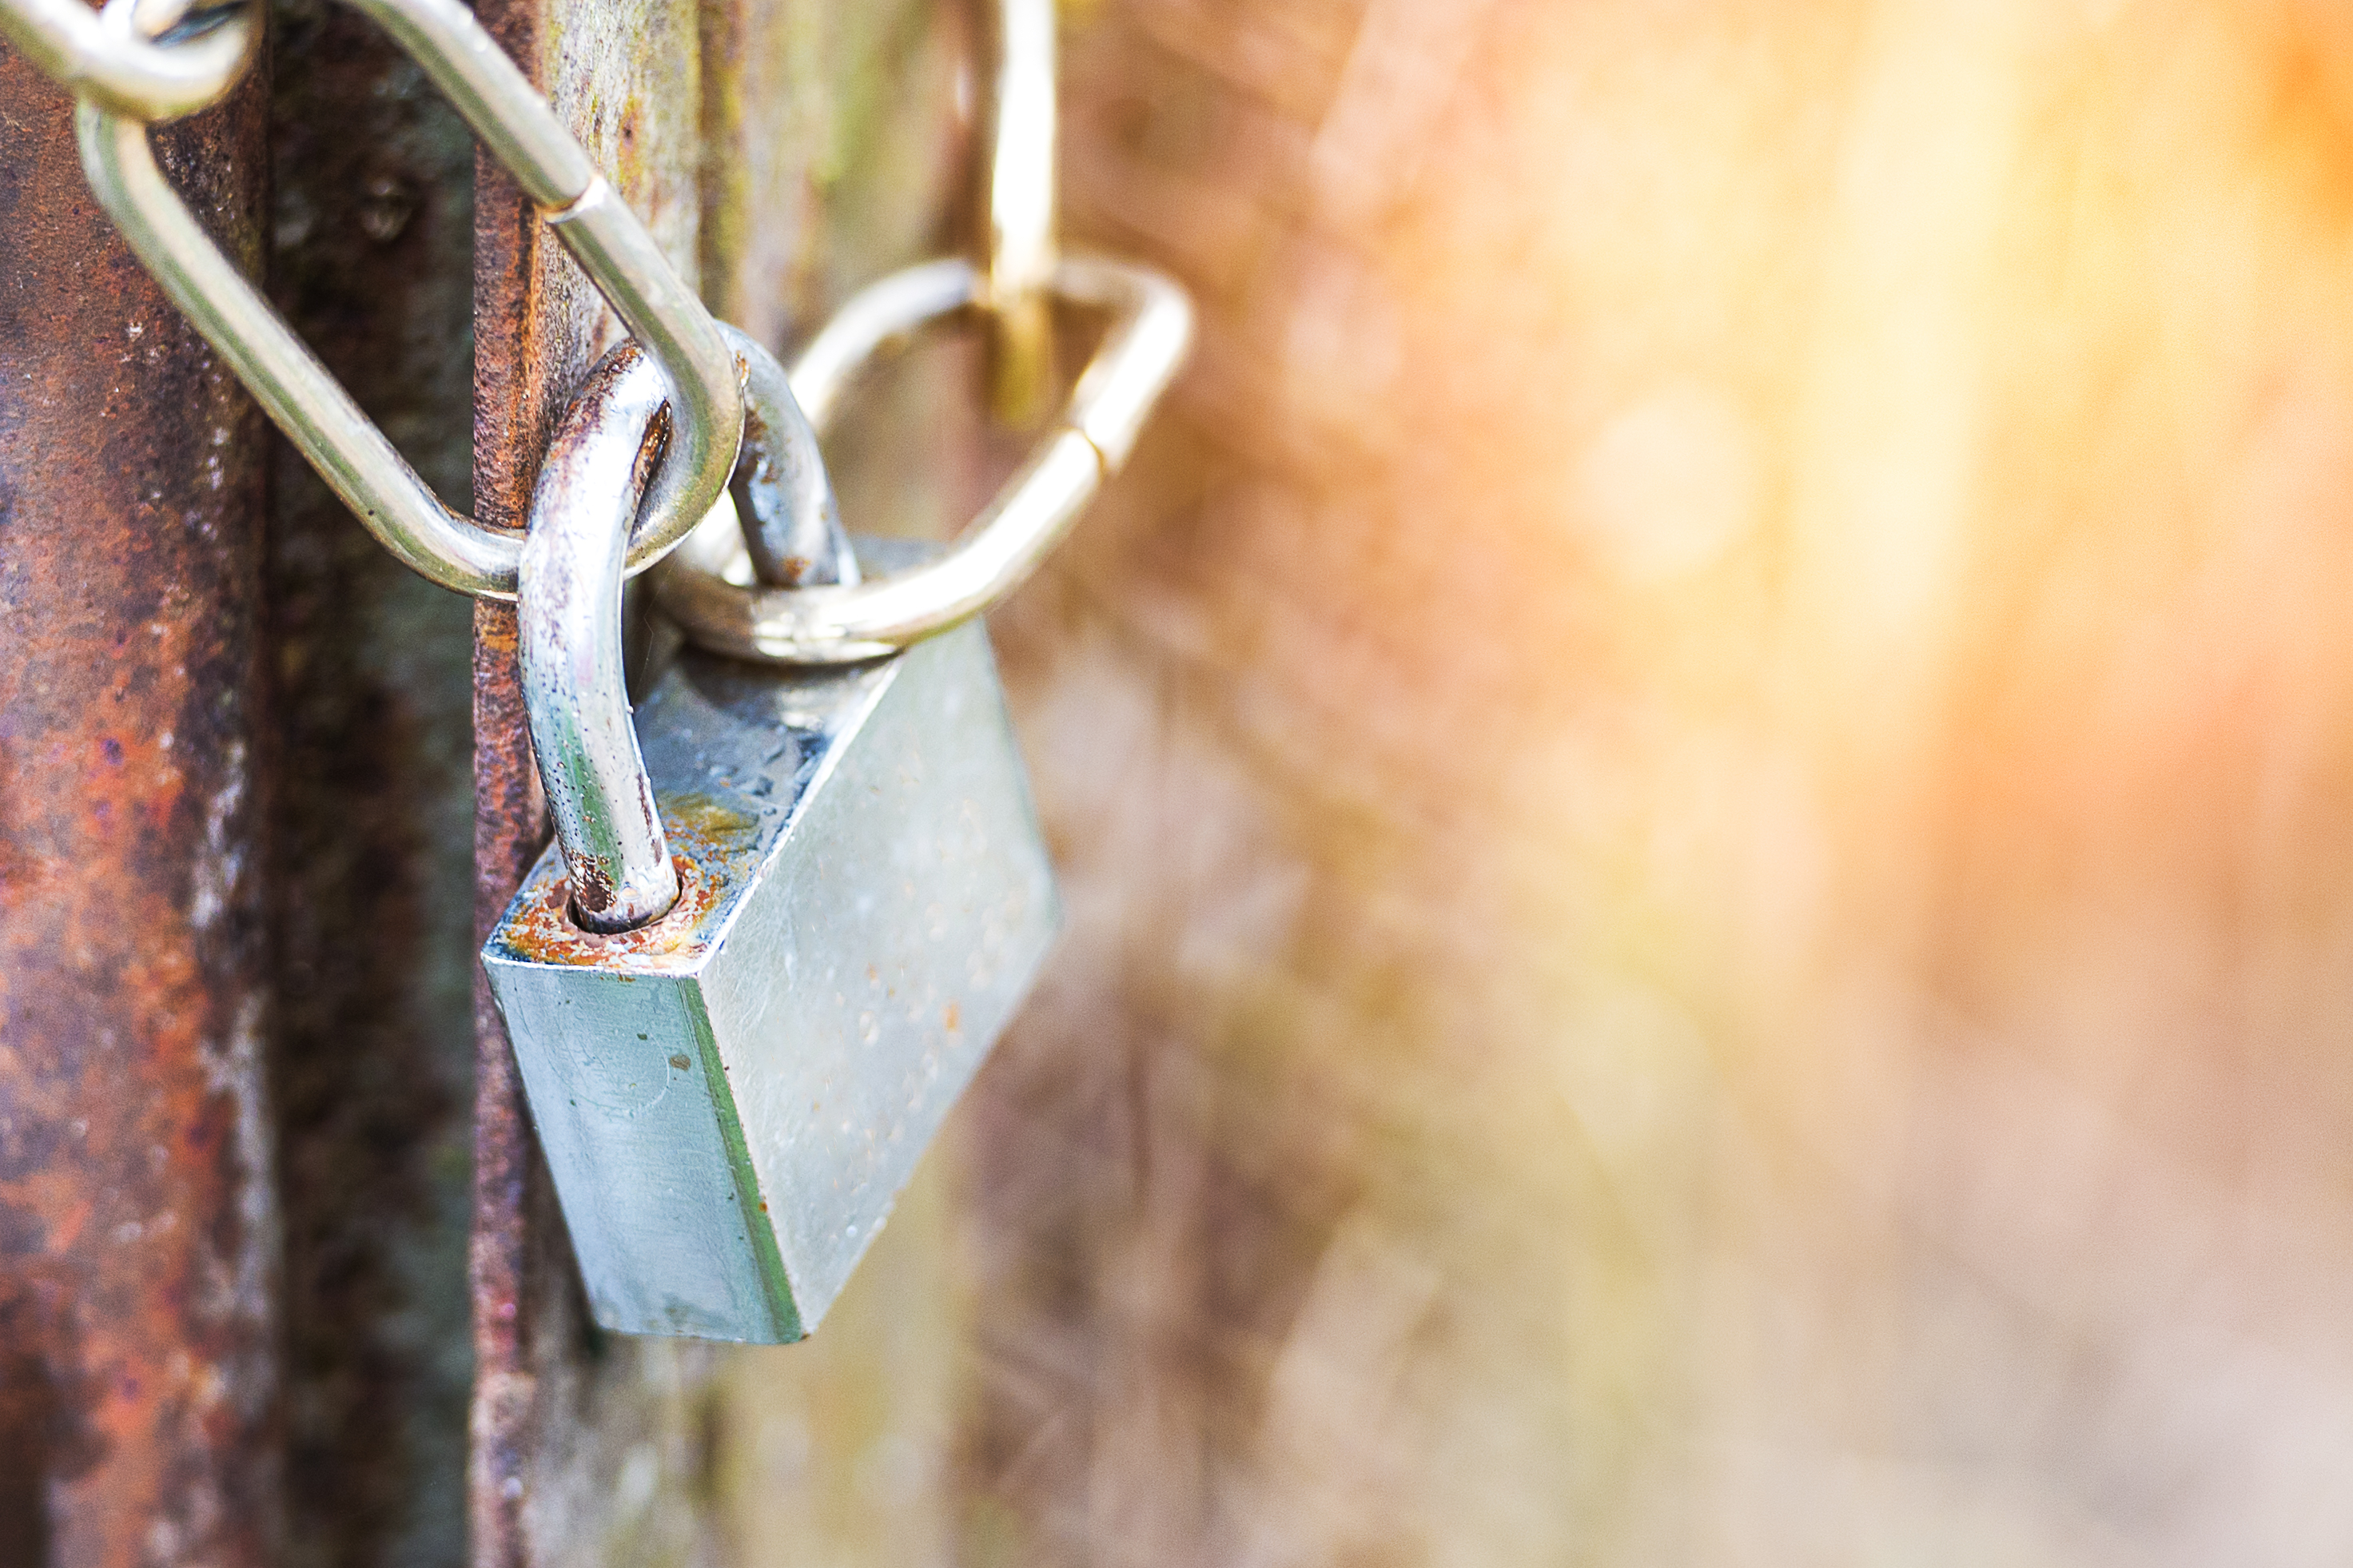 Anna Nikonorova by Shutterstock payment security, a locked chain